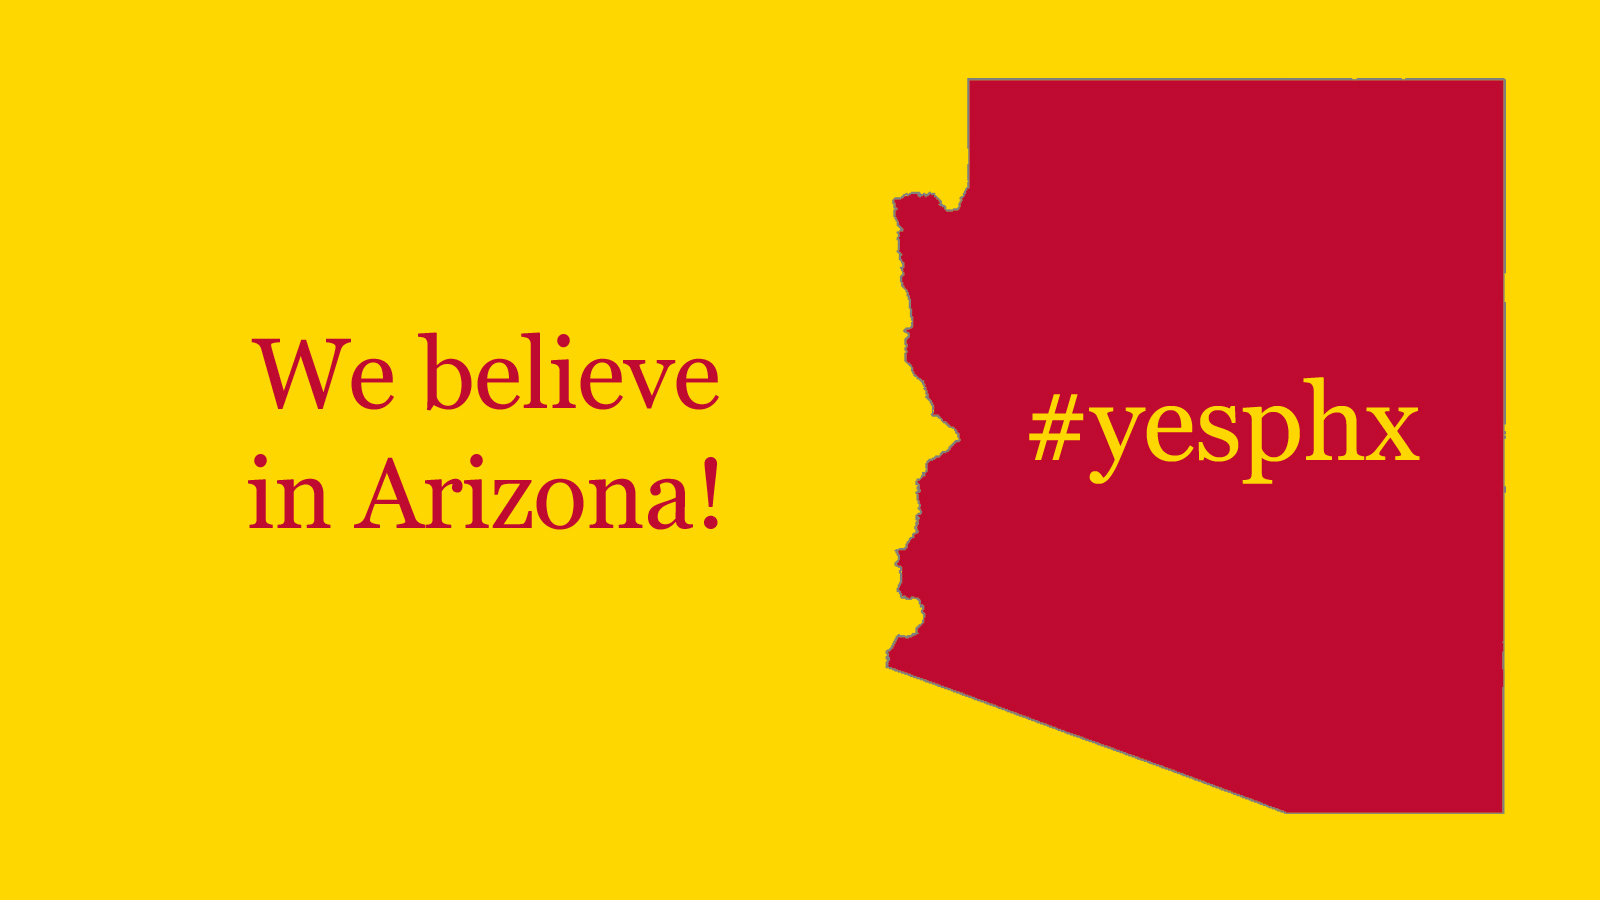 Attention Venture Capitalists, it's time to setup shop in Arizona!